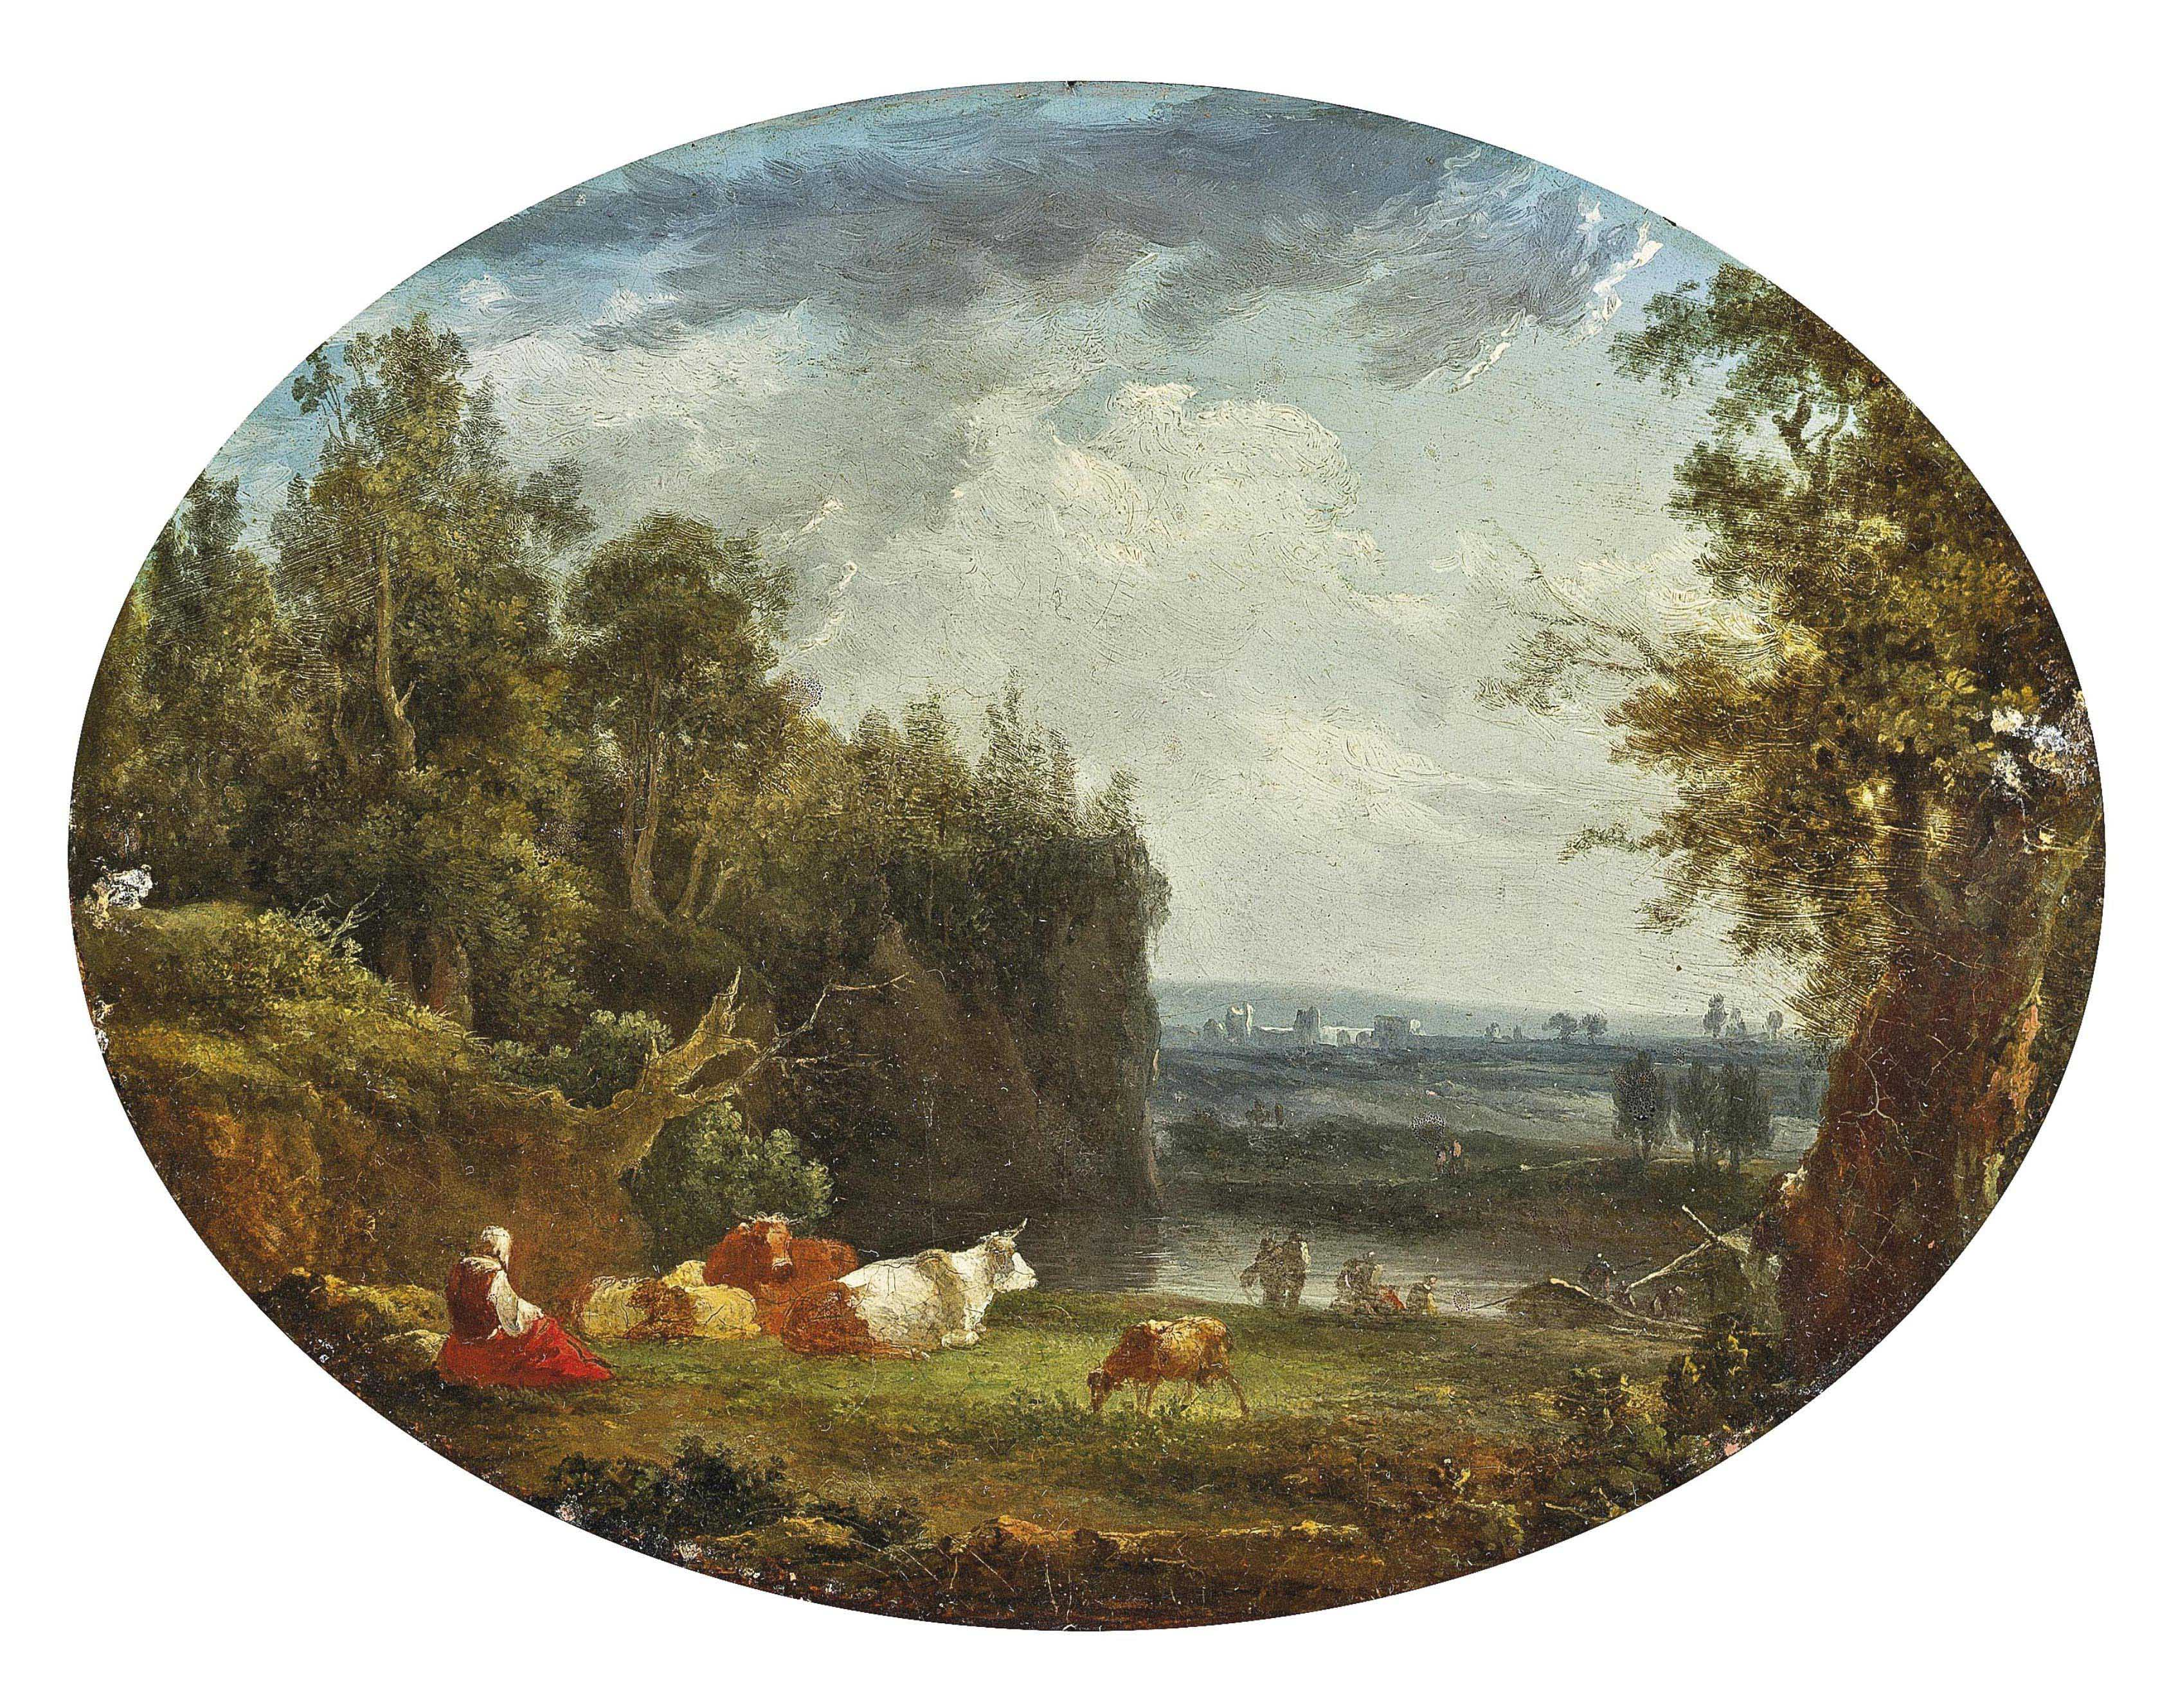 A woman watching over the herd on a river bank